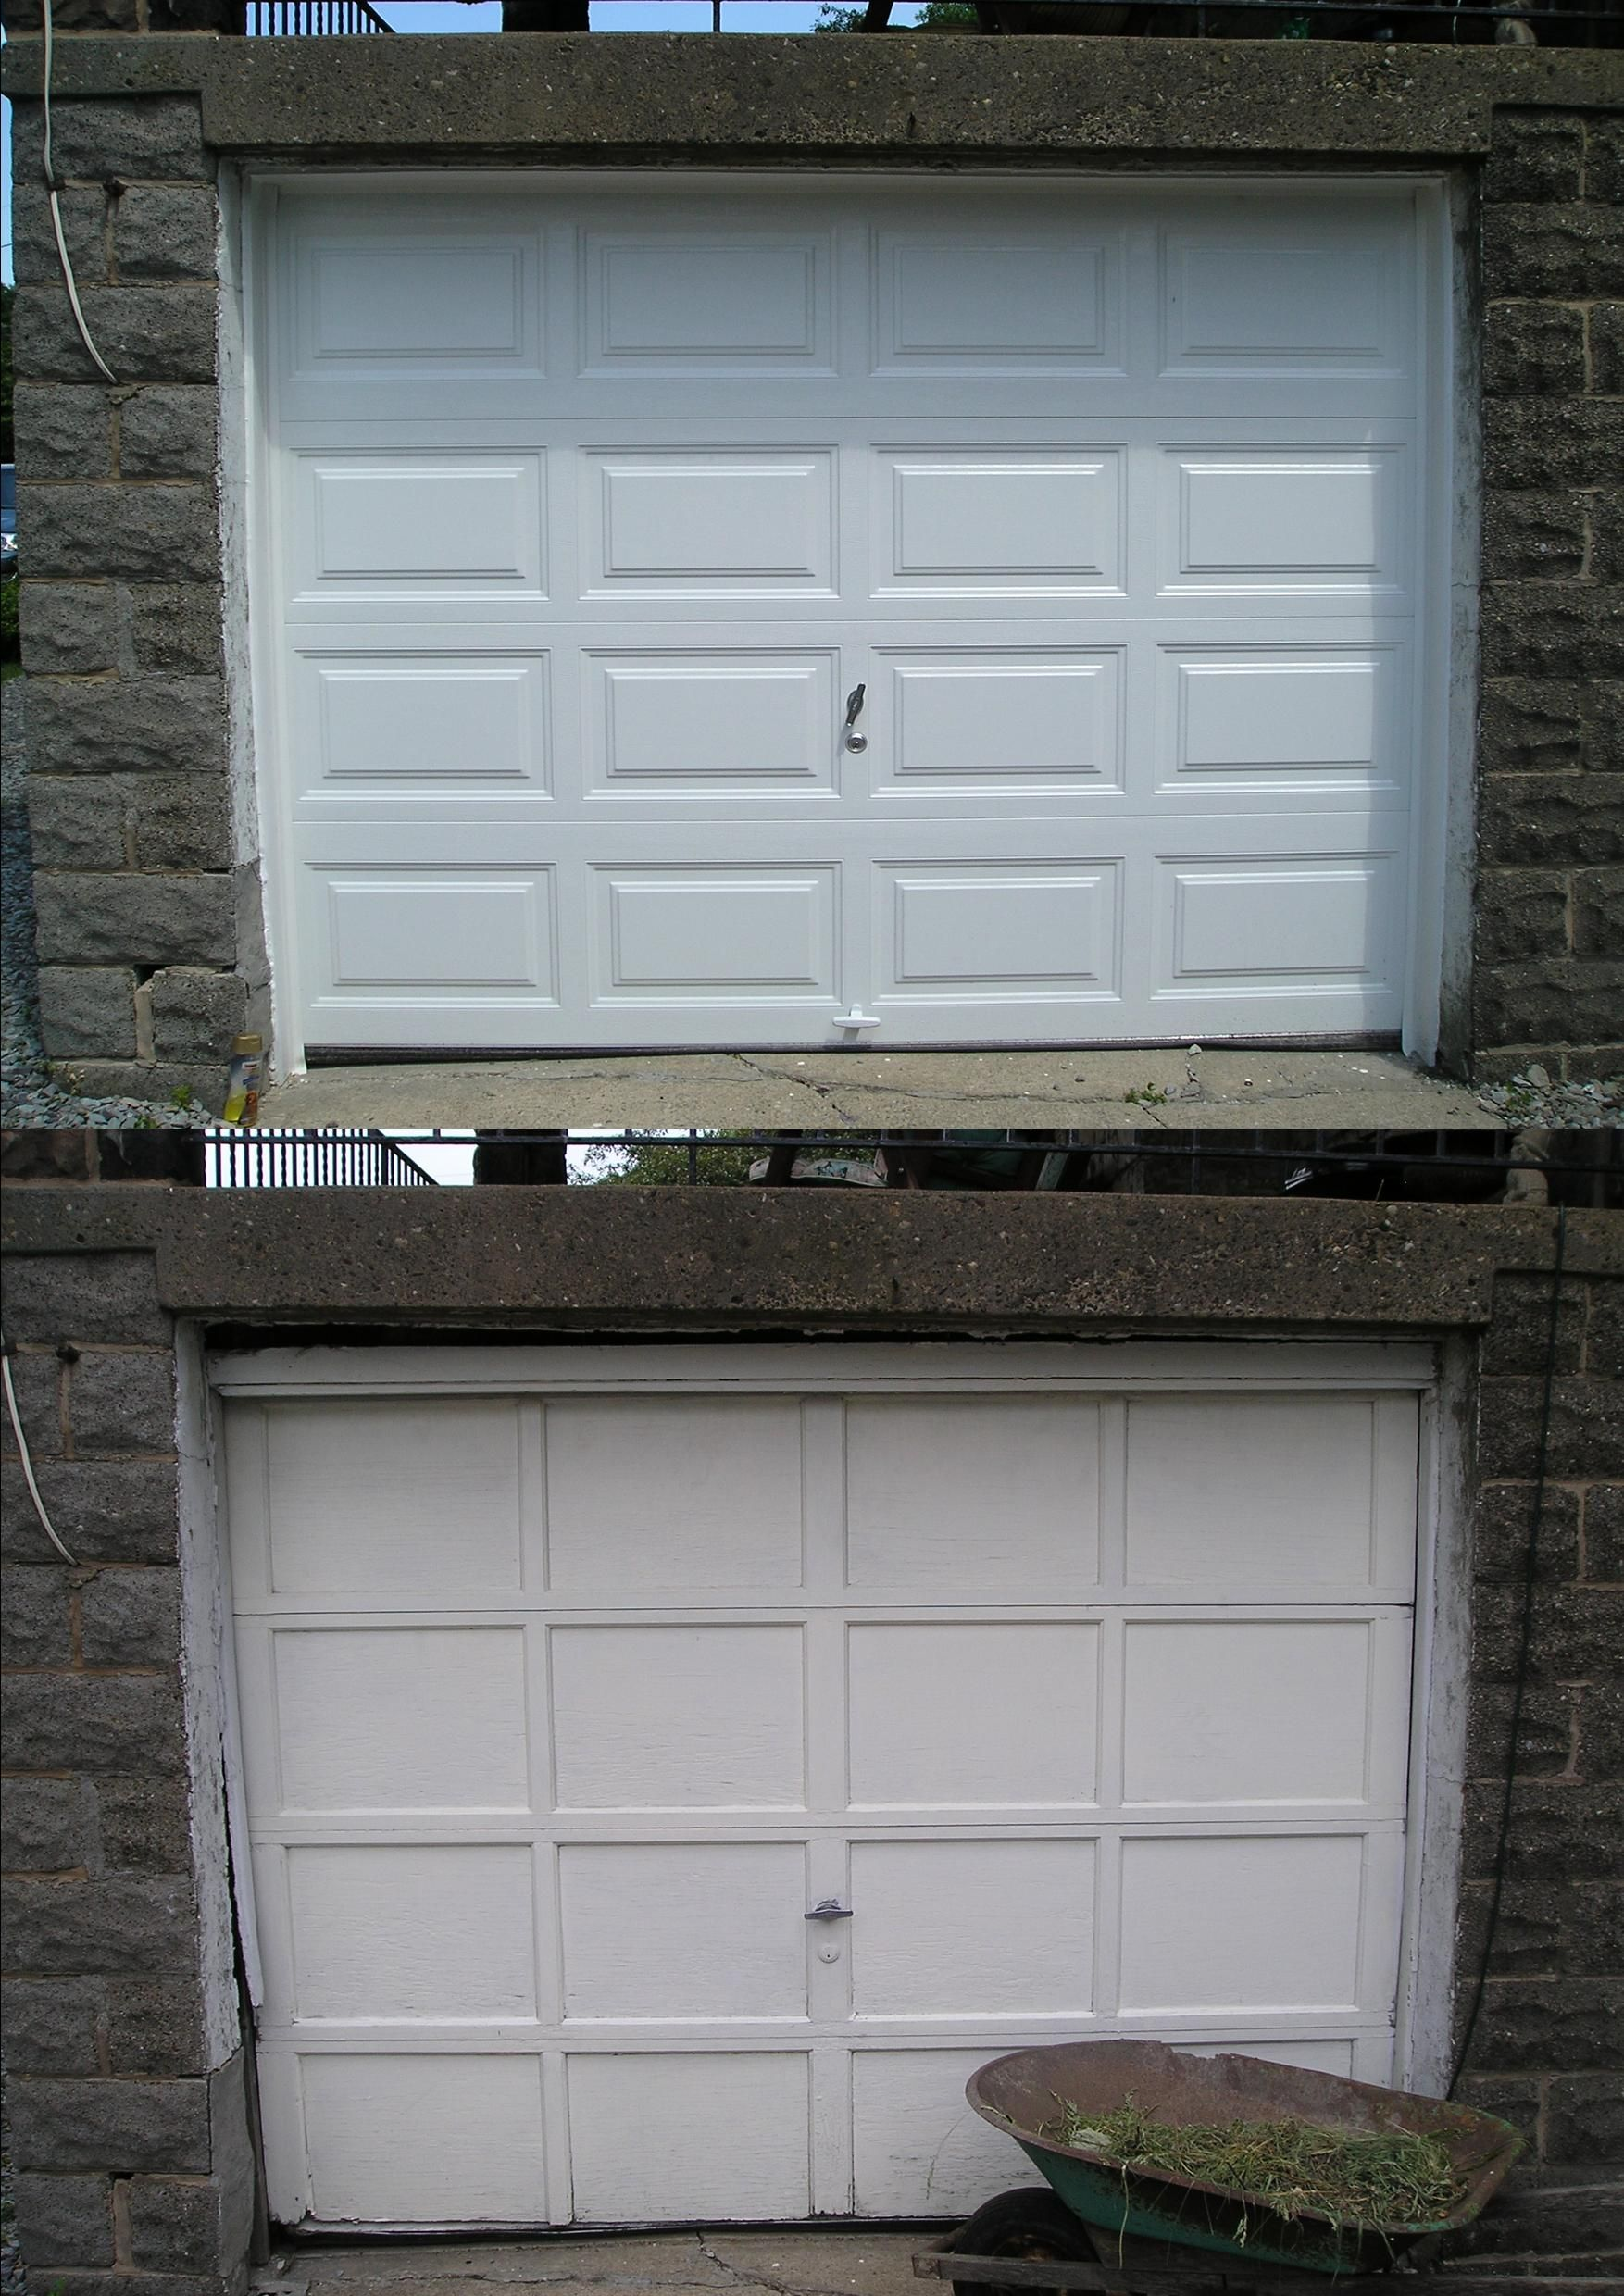 Clopay 4050 Garage Door Thomas V Giel Corporation Brings The Show